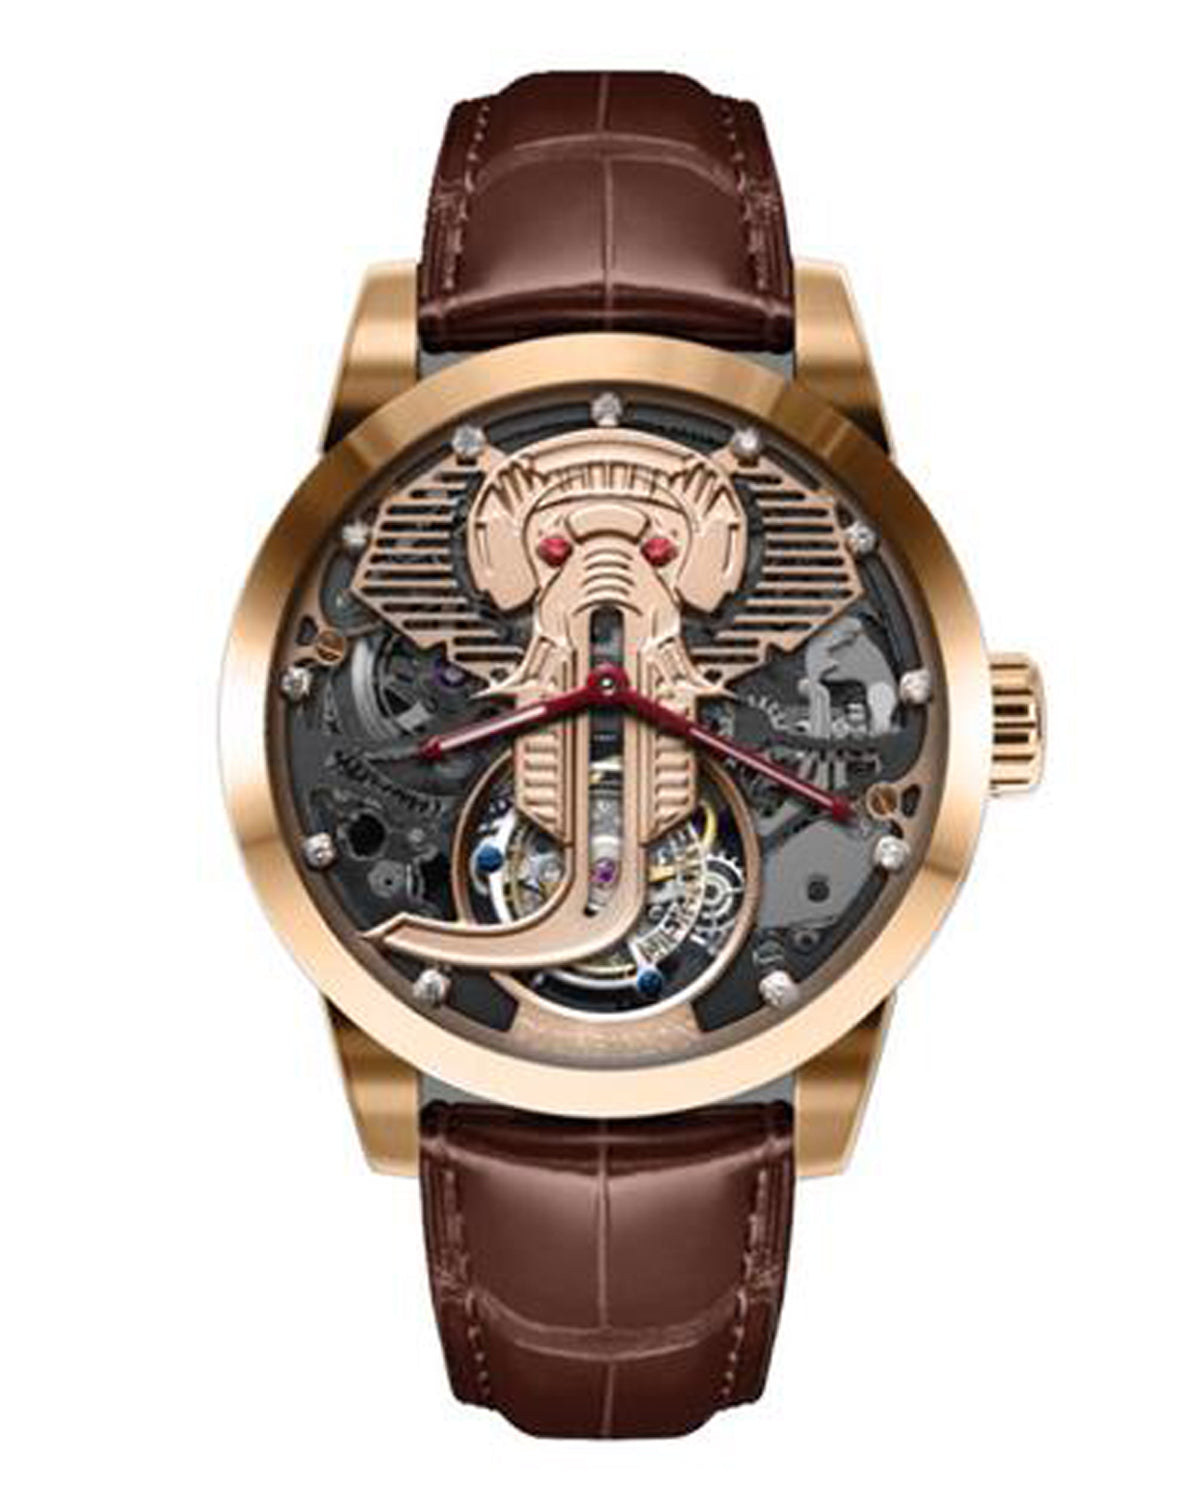 Jackson Memorigin Tourbillon Watch front view